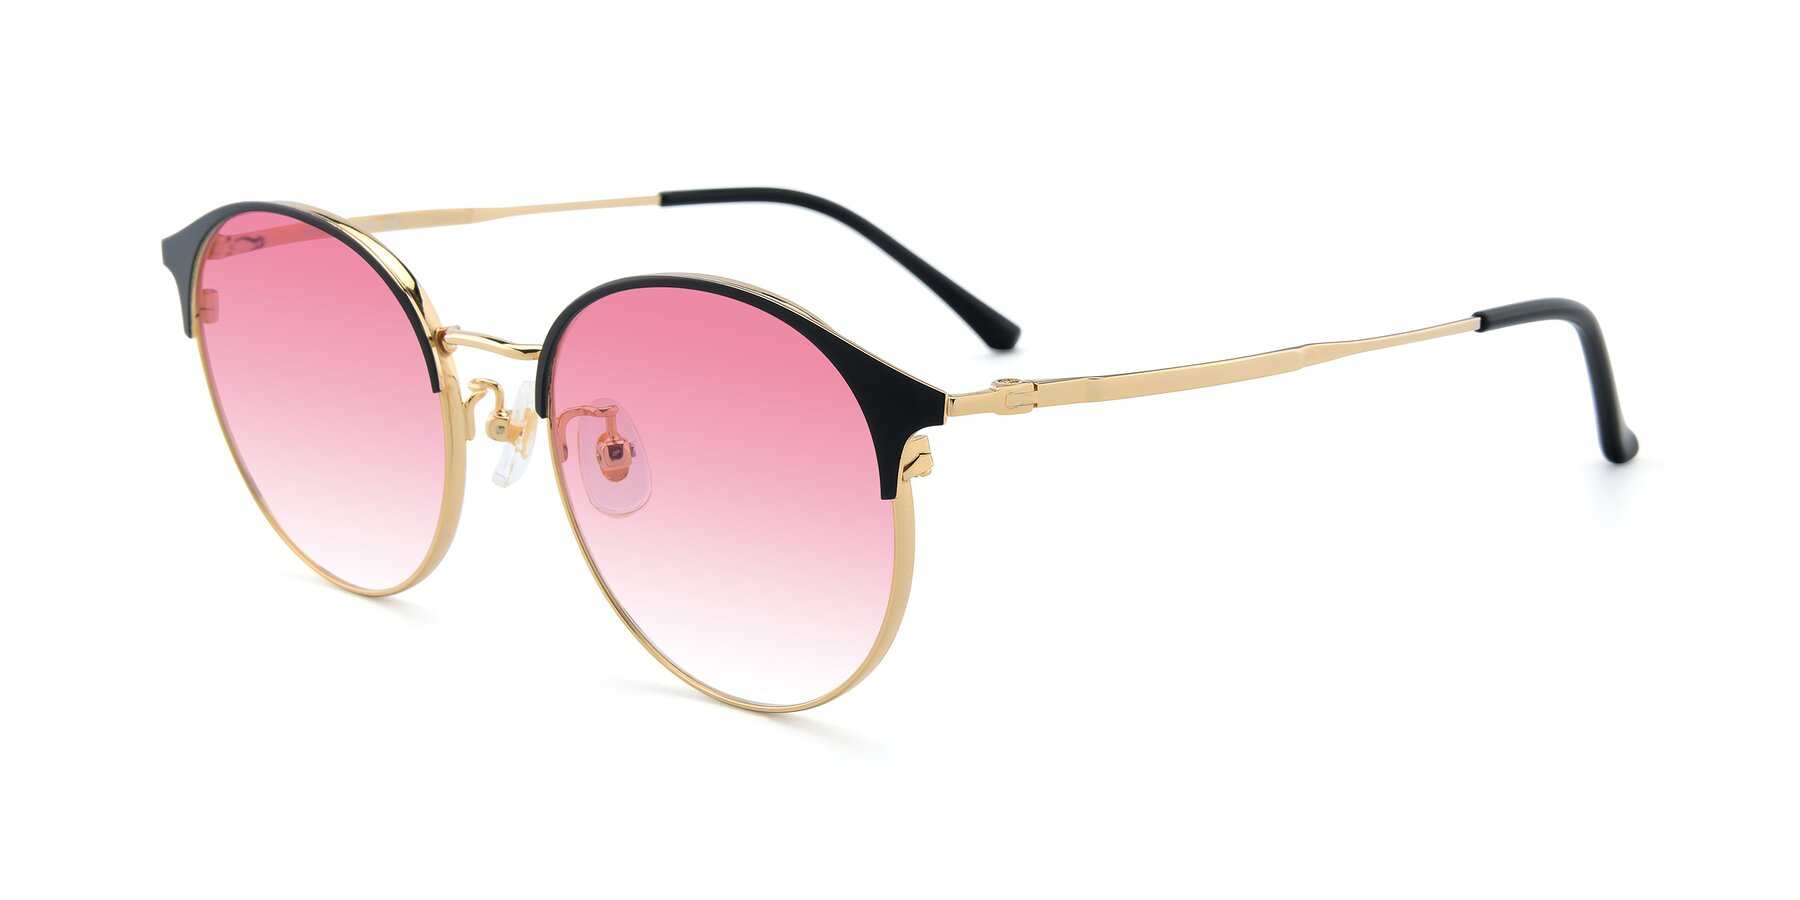 Angle of XC-8031 in Black-Gold with Pink Gradient Lenses